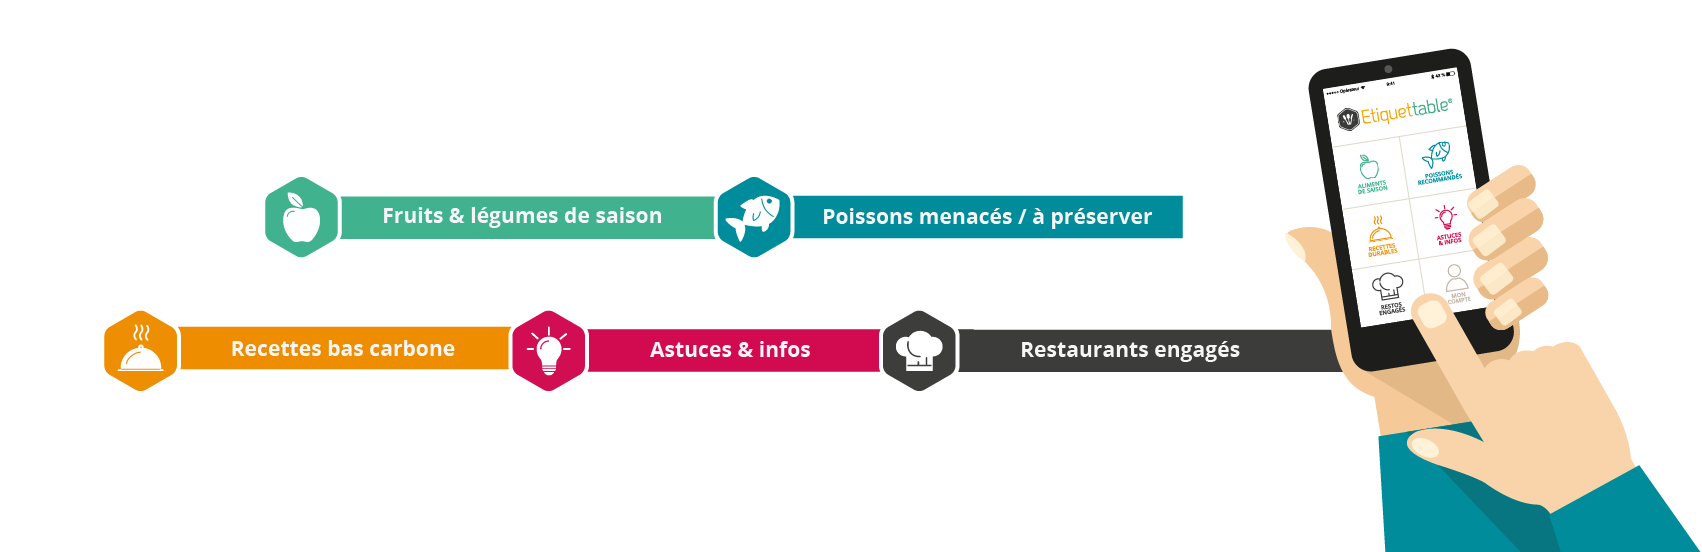 La 1ère appli mobile collaborative de cuisine durable pour le grand public